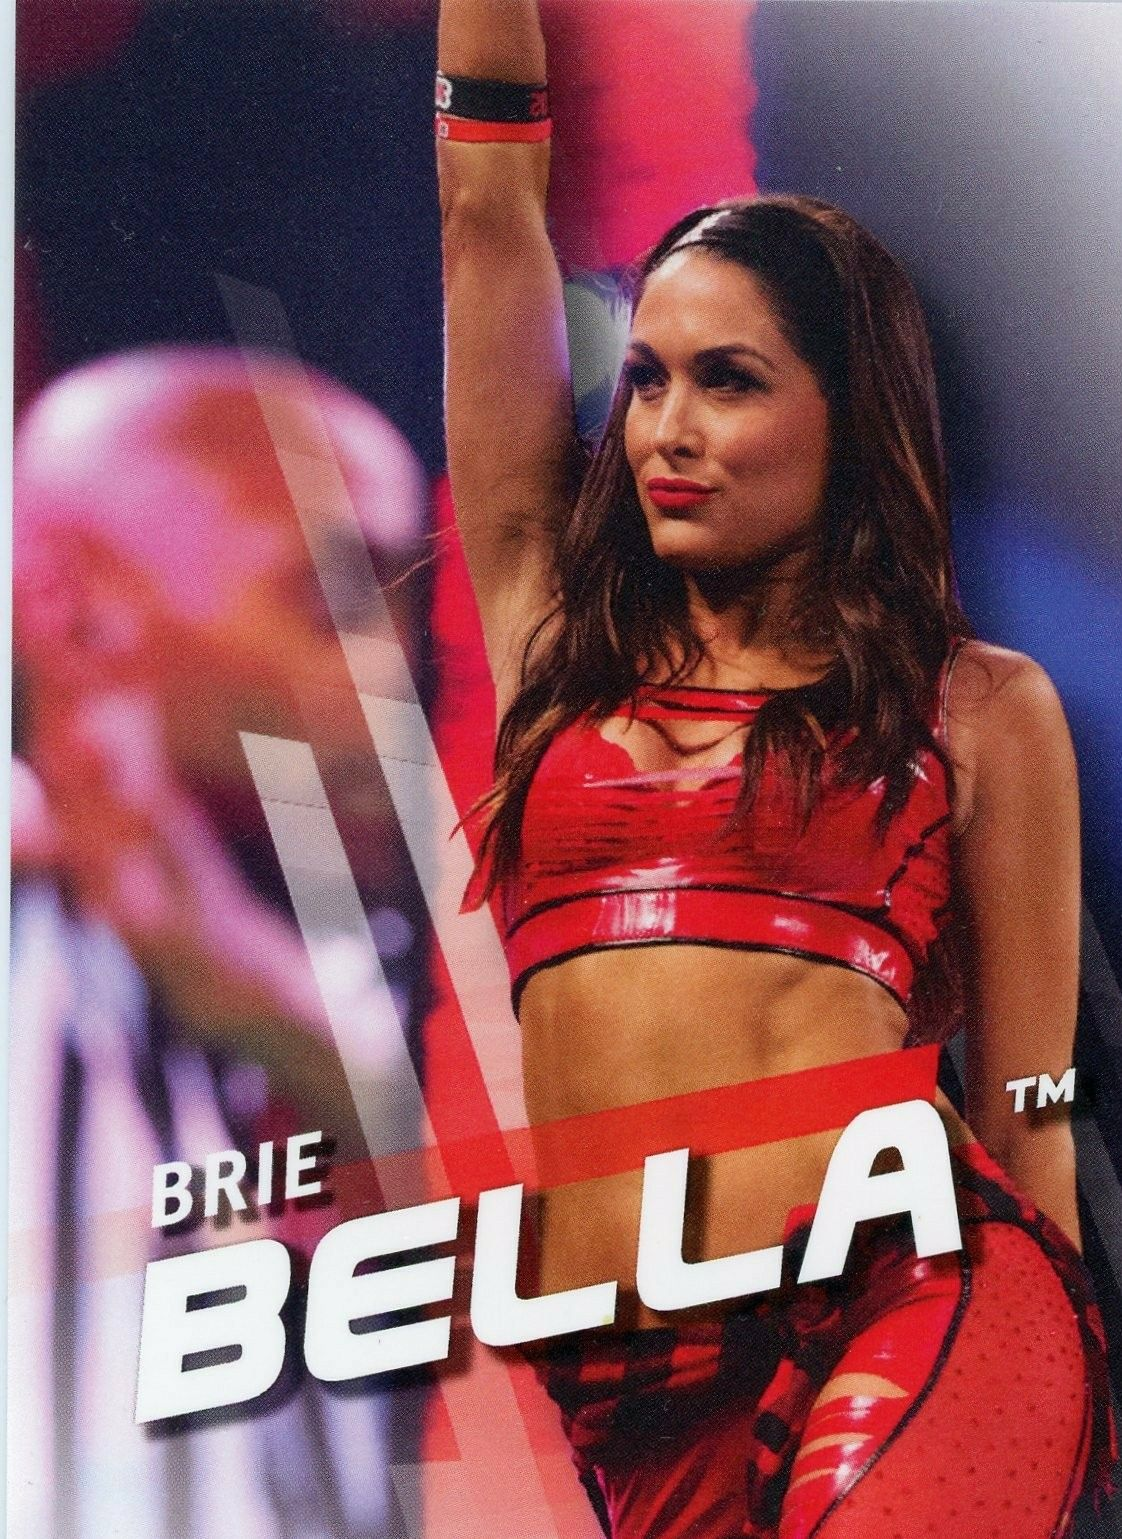 Pin By Matthew Begg On Bella Twins Nikki And Brie Brie Bella Nikki And Brie Bella Nikki Bella